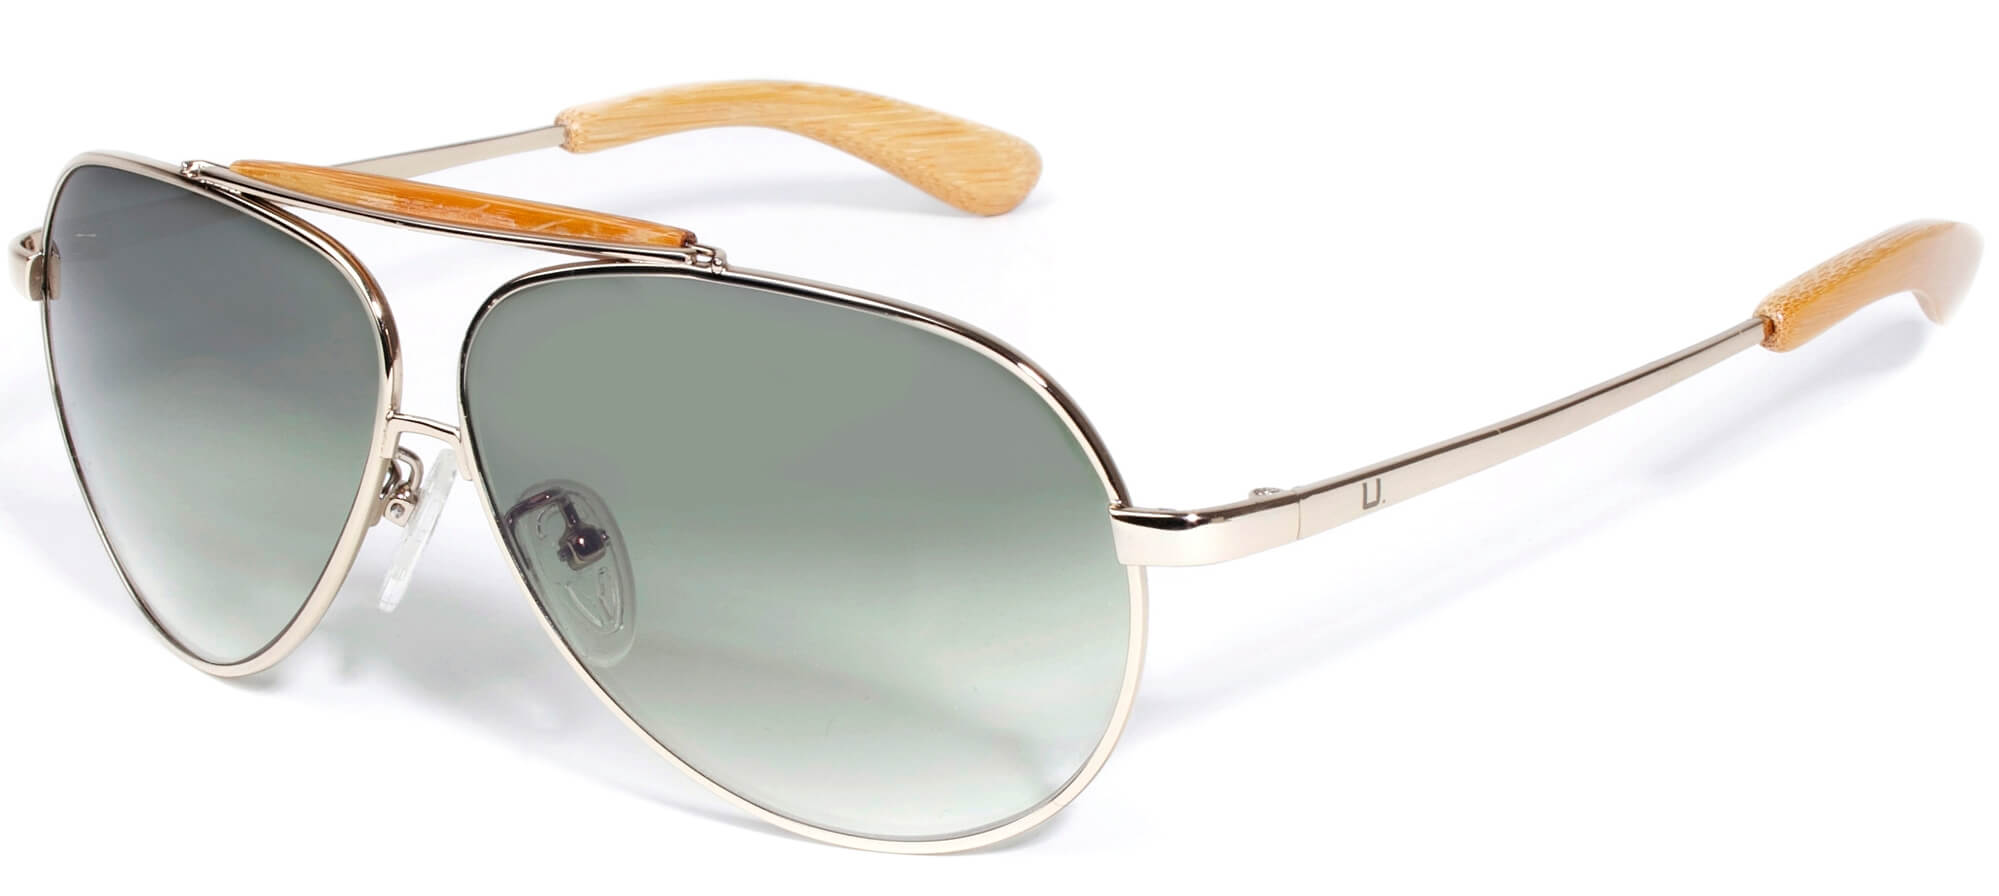 The Kensington ethical sunglasses by Colin Leslie